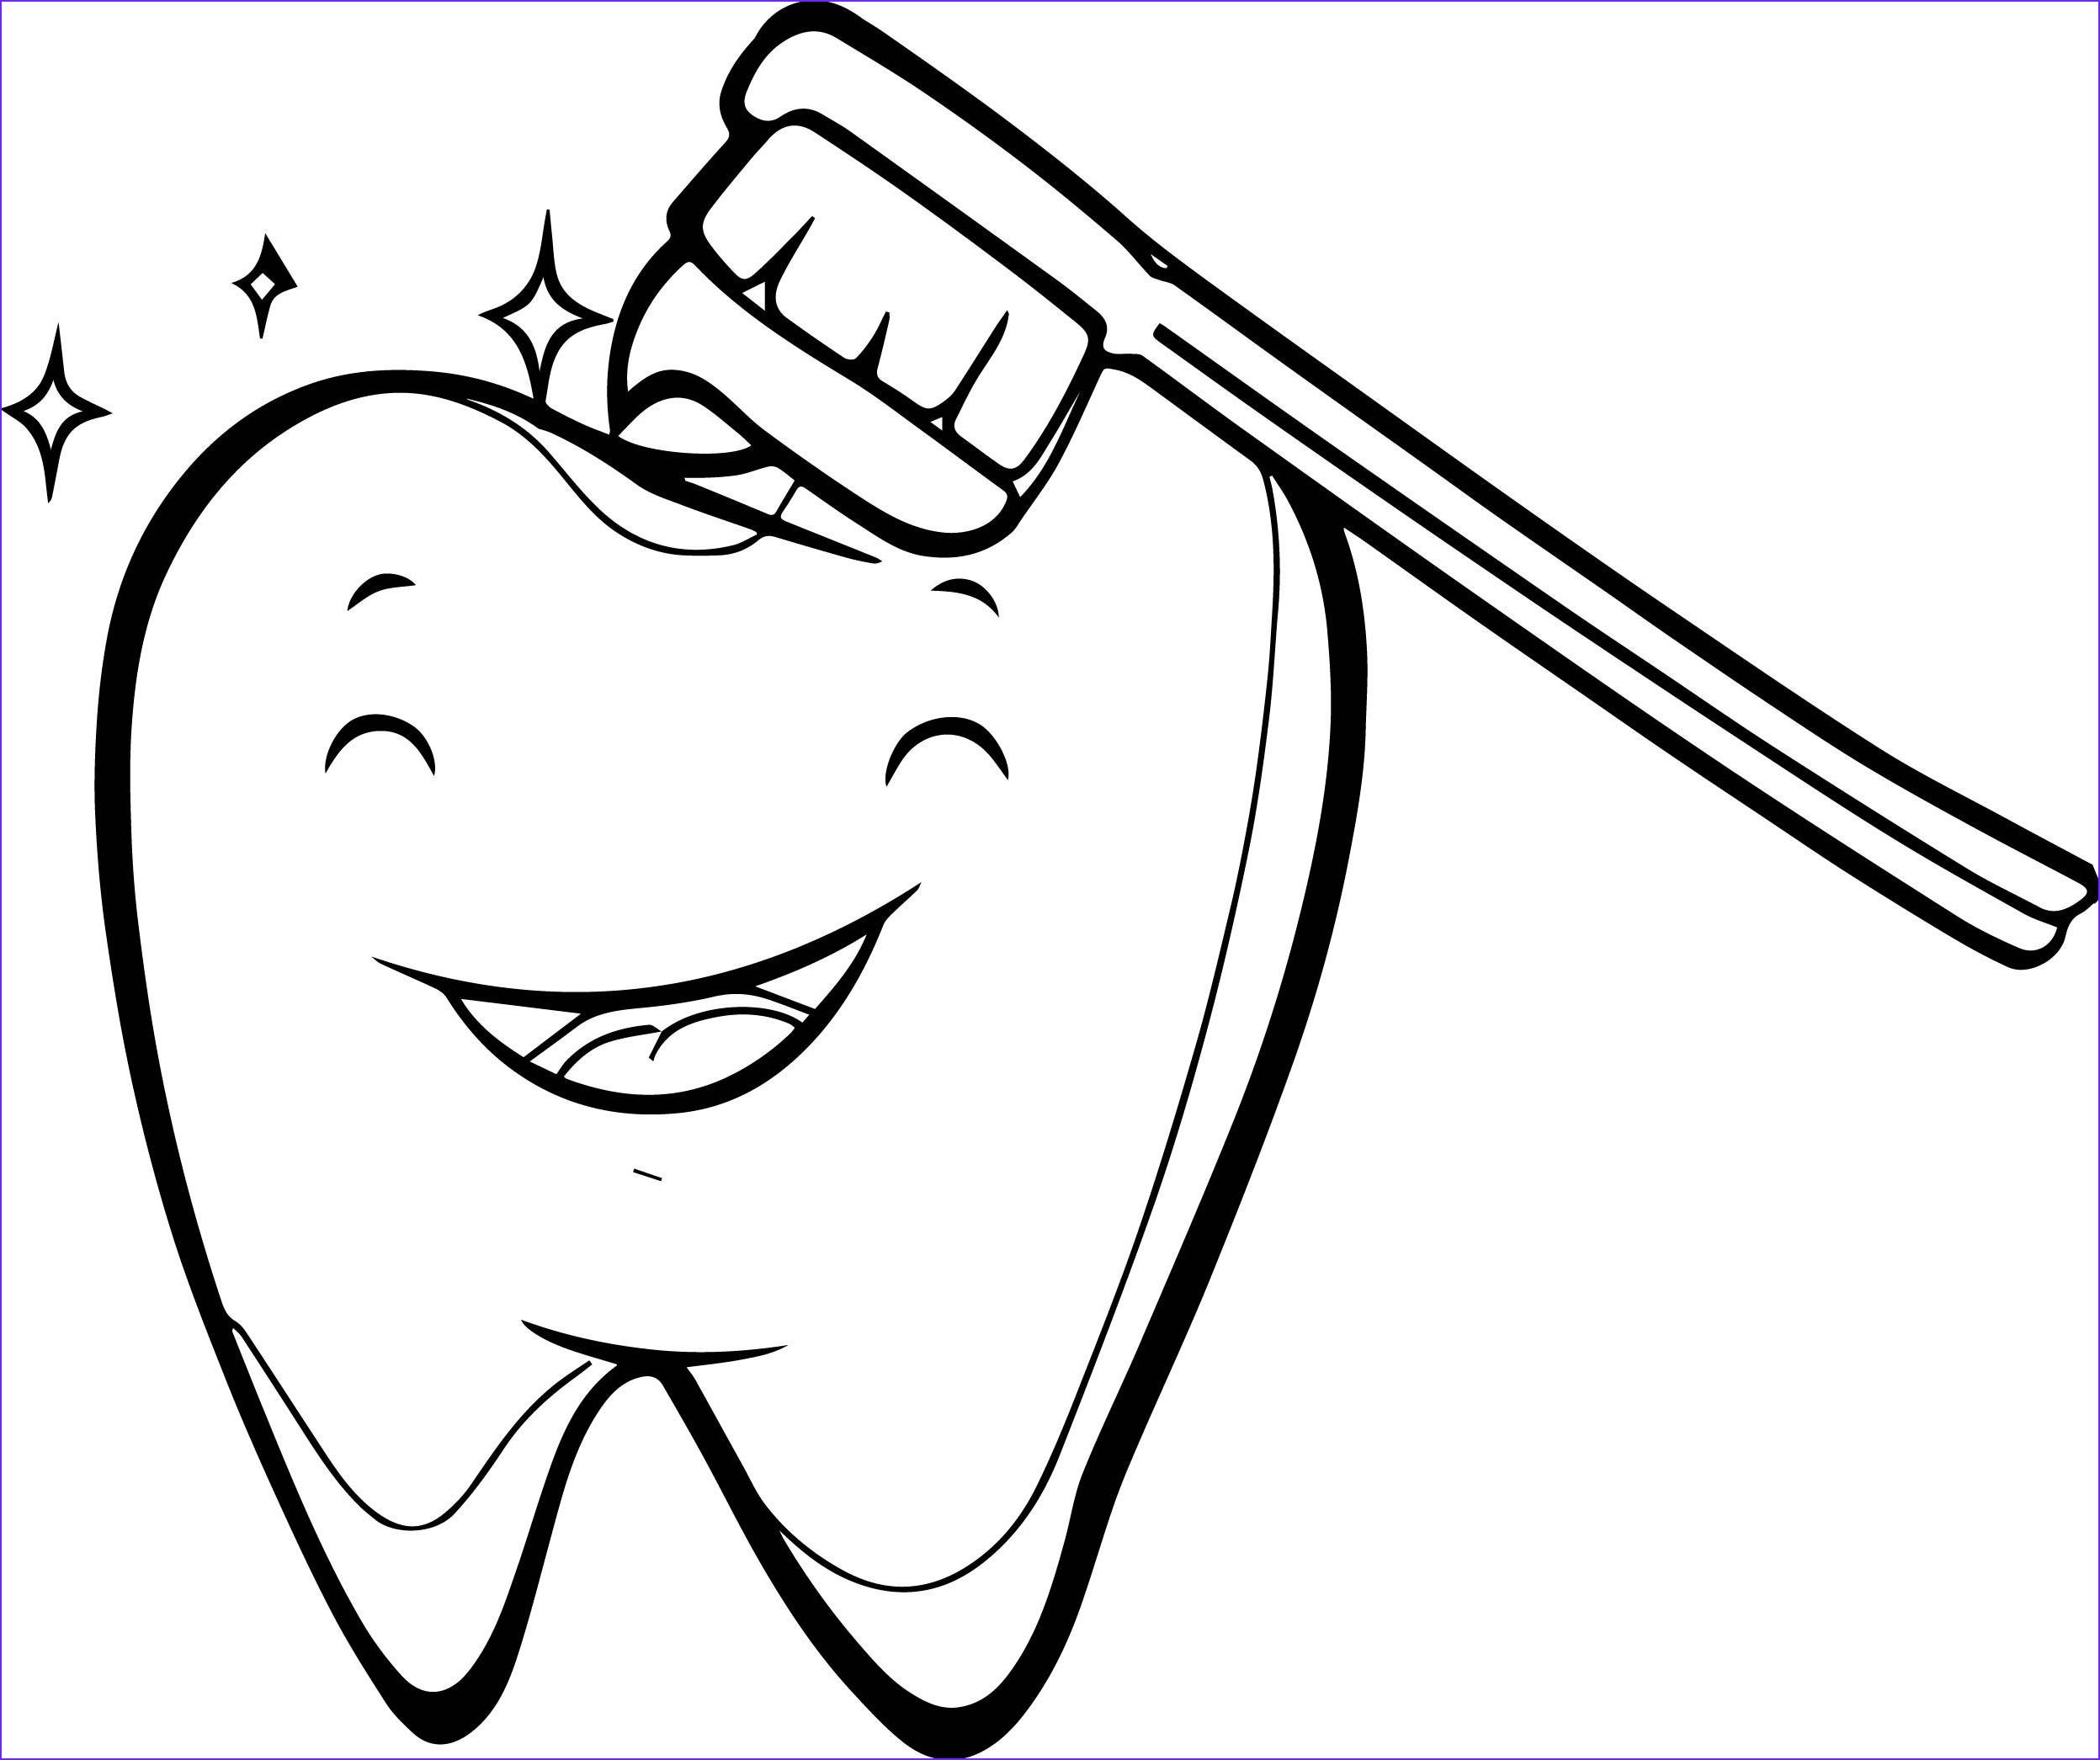 Tooth Coloring Cool Collection 14 Teeth Coloring Pages Preschool Preschool Dental